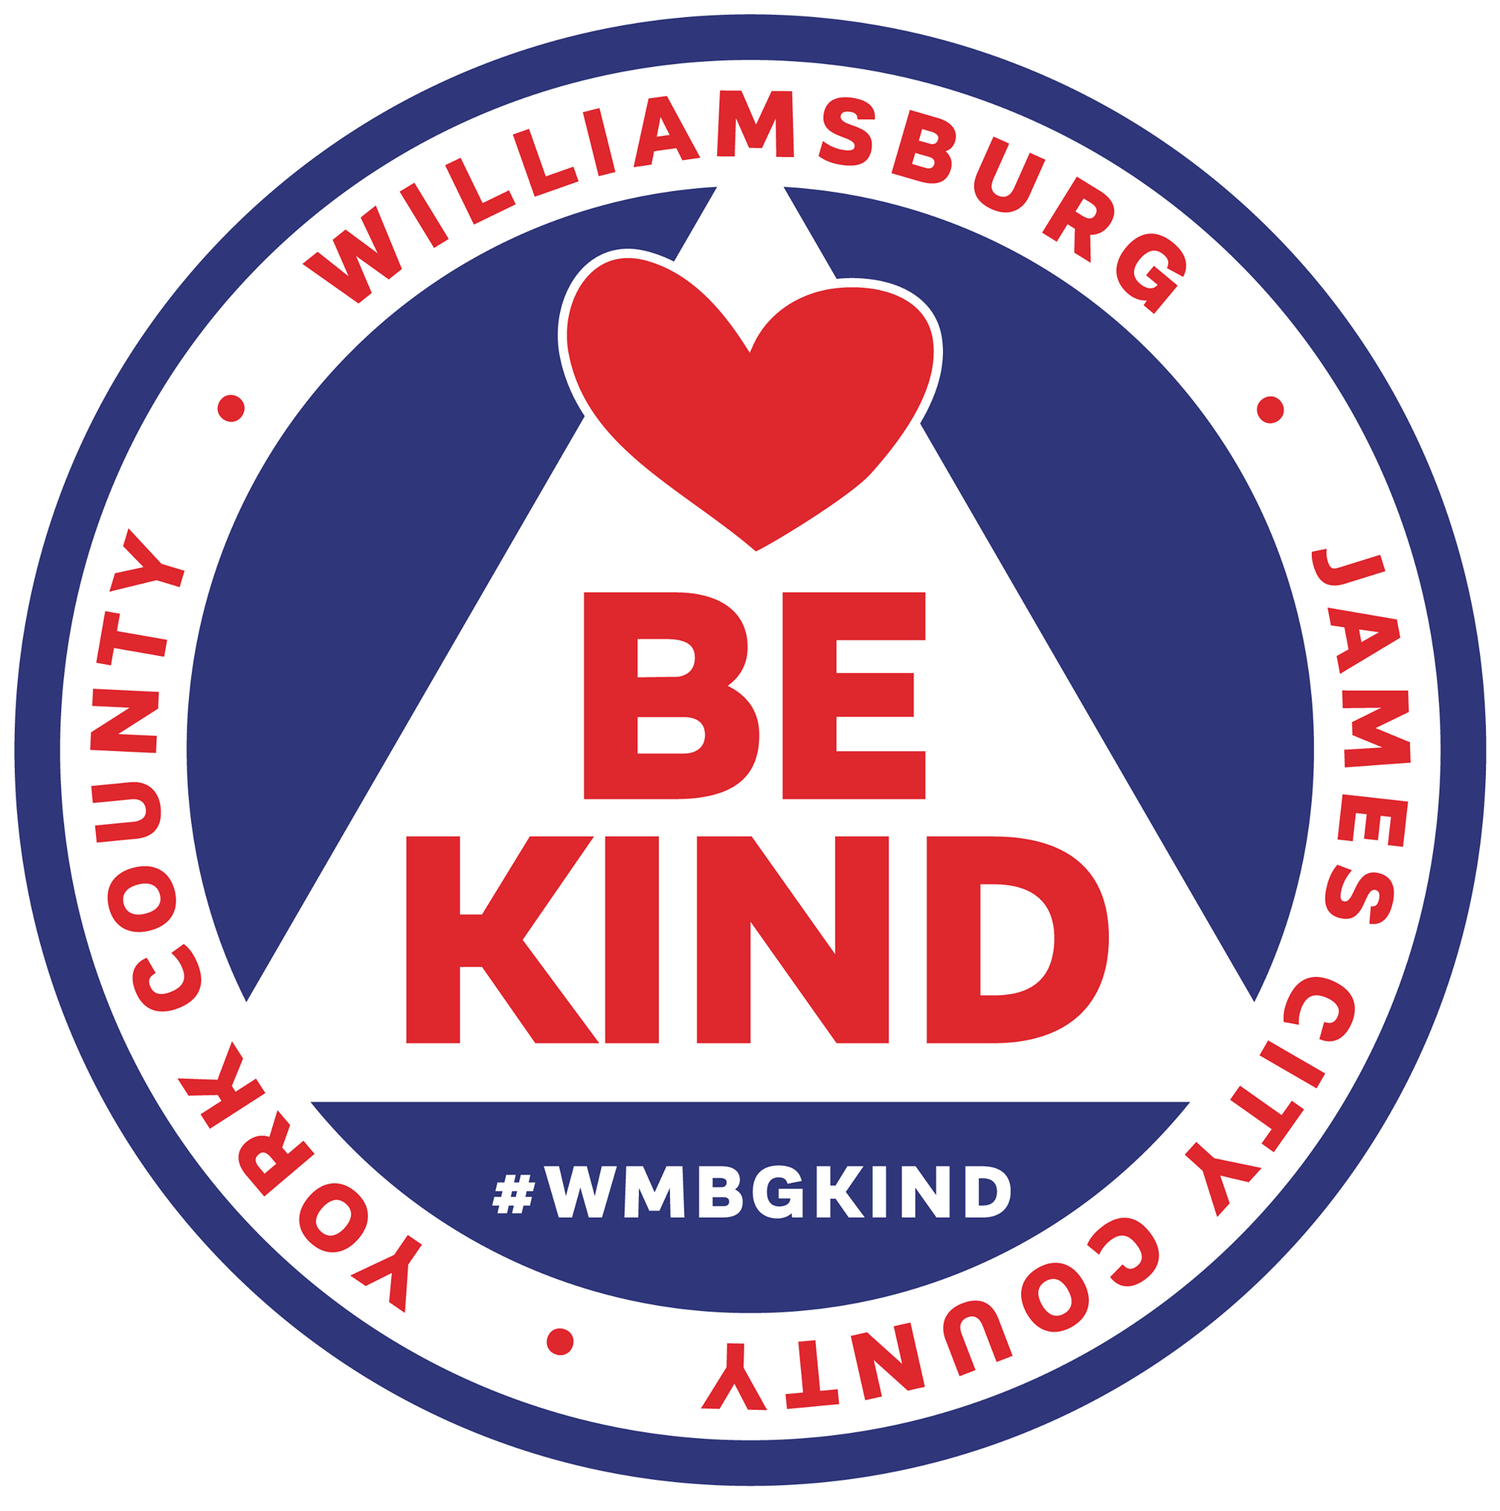 Legacy Joins the Kindness Movement